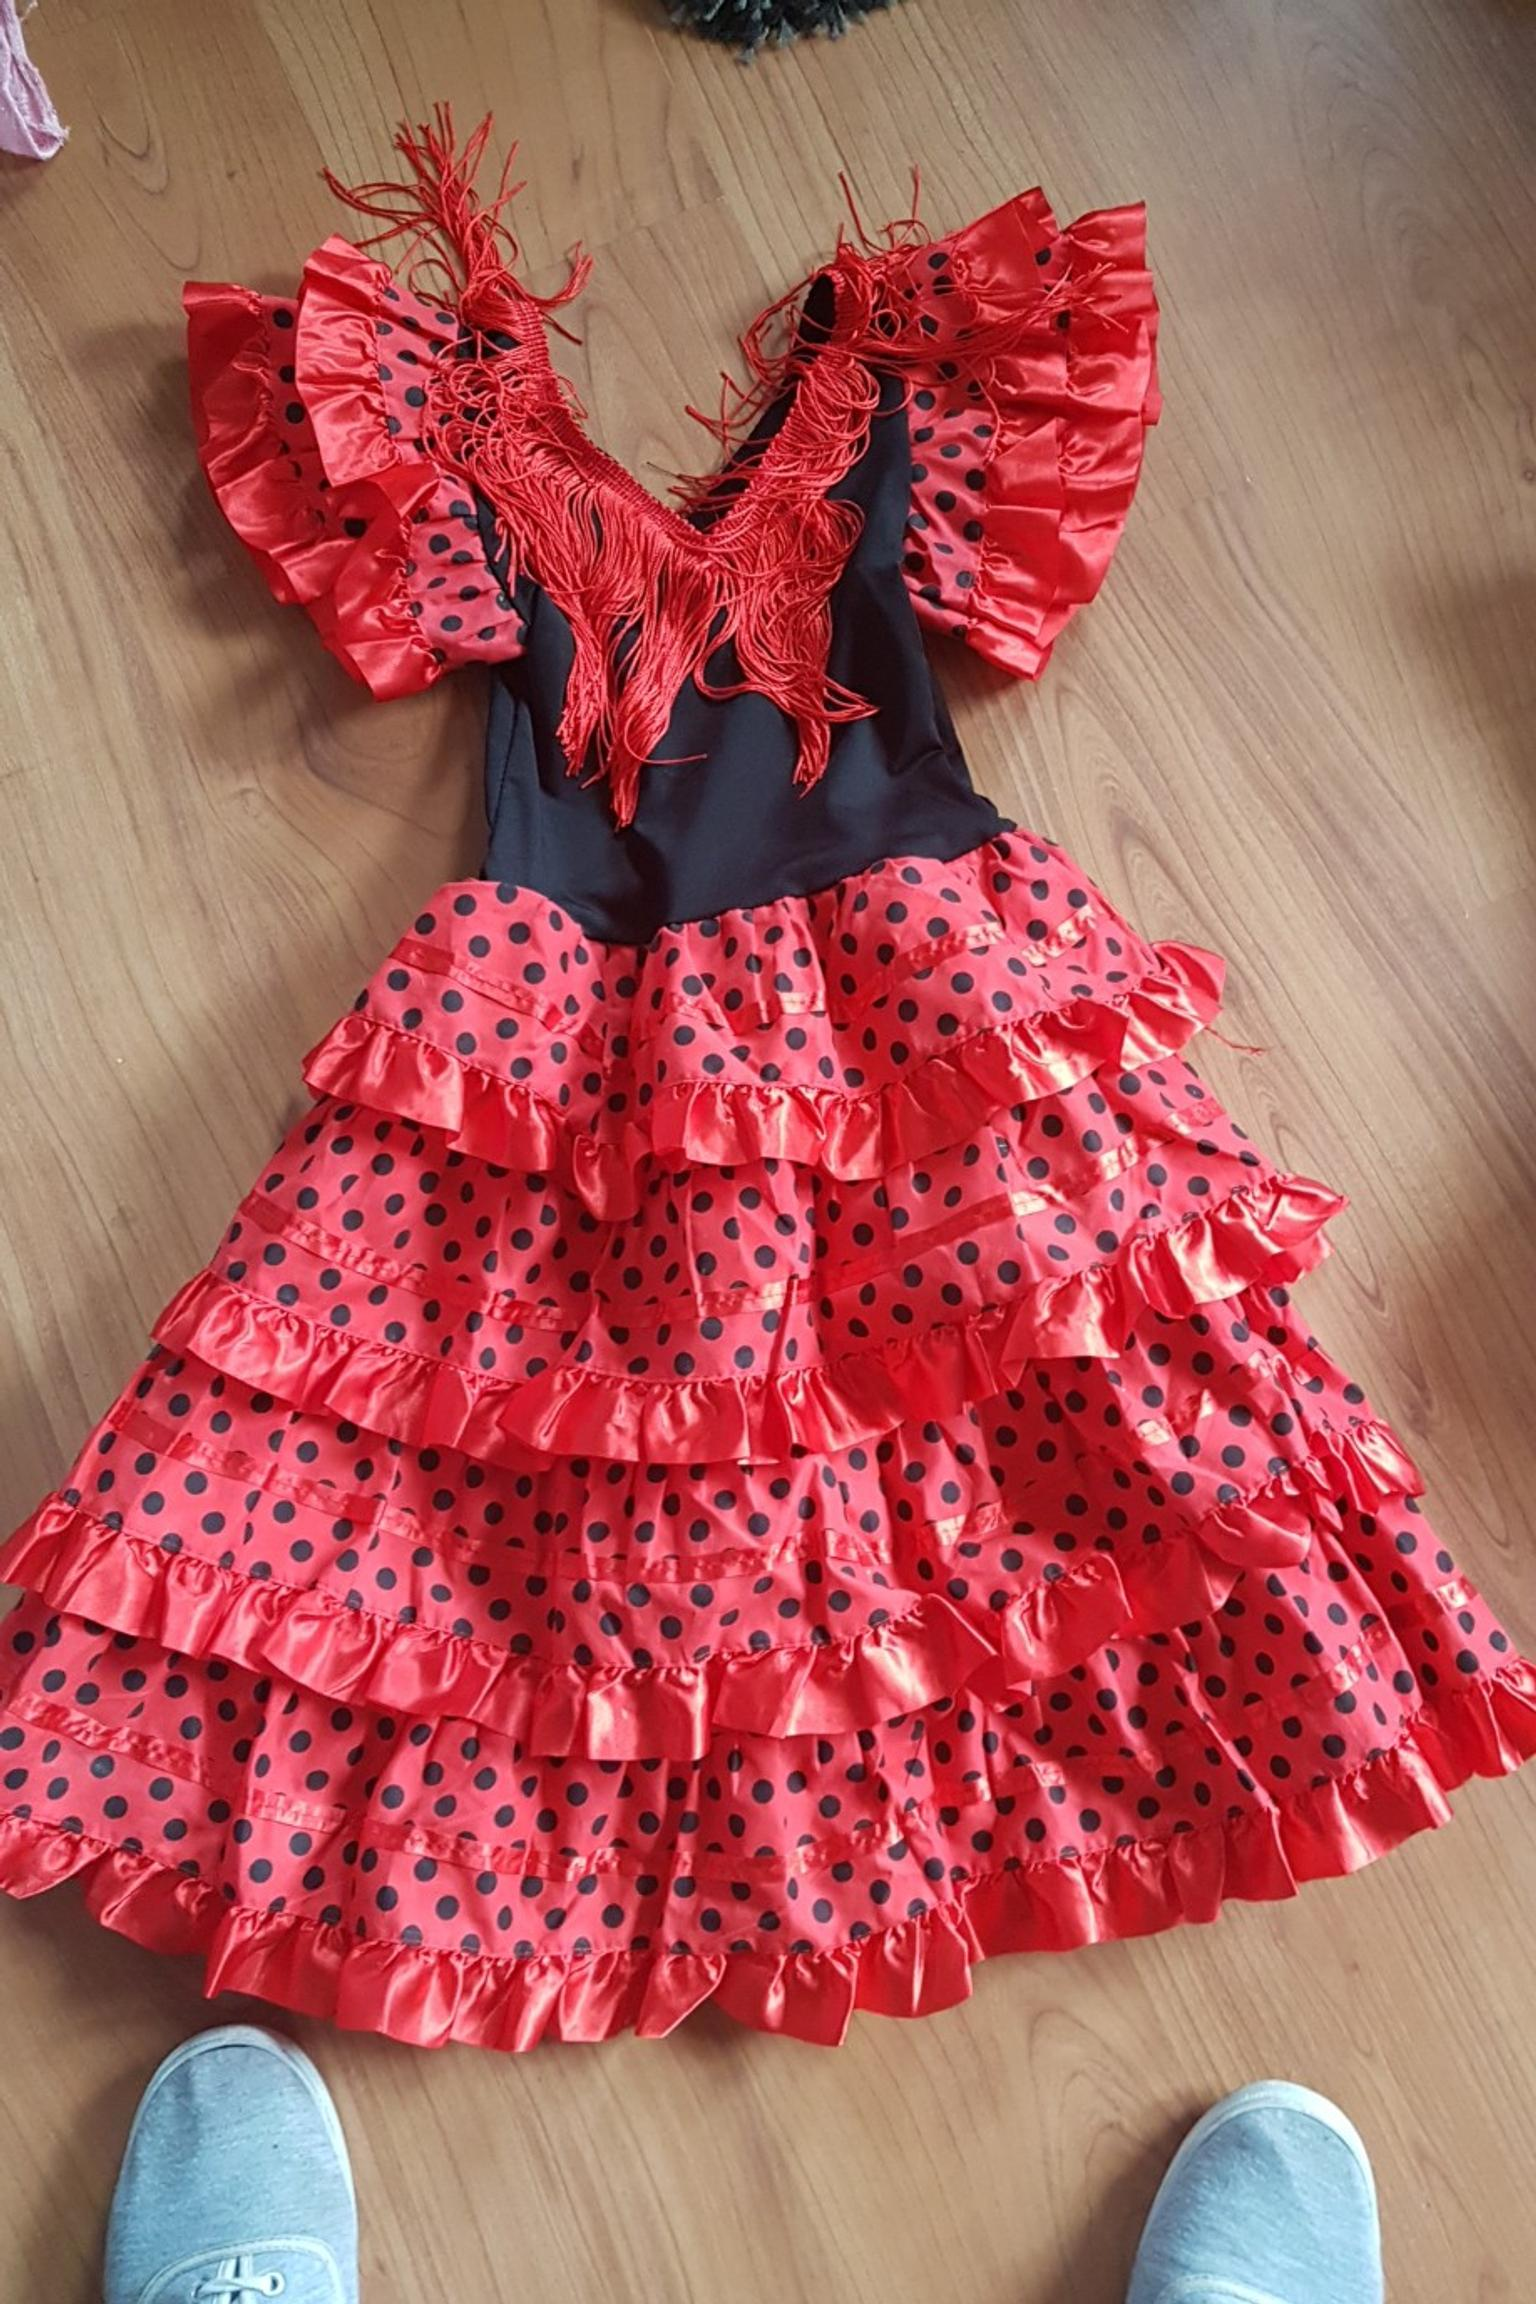 ed878b86ab1b Yoremy flamenco Spanish girls dress in B63 Dudley for £5.00 for sale -  Shpock